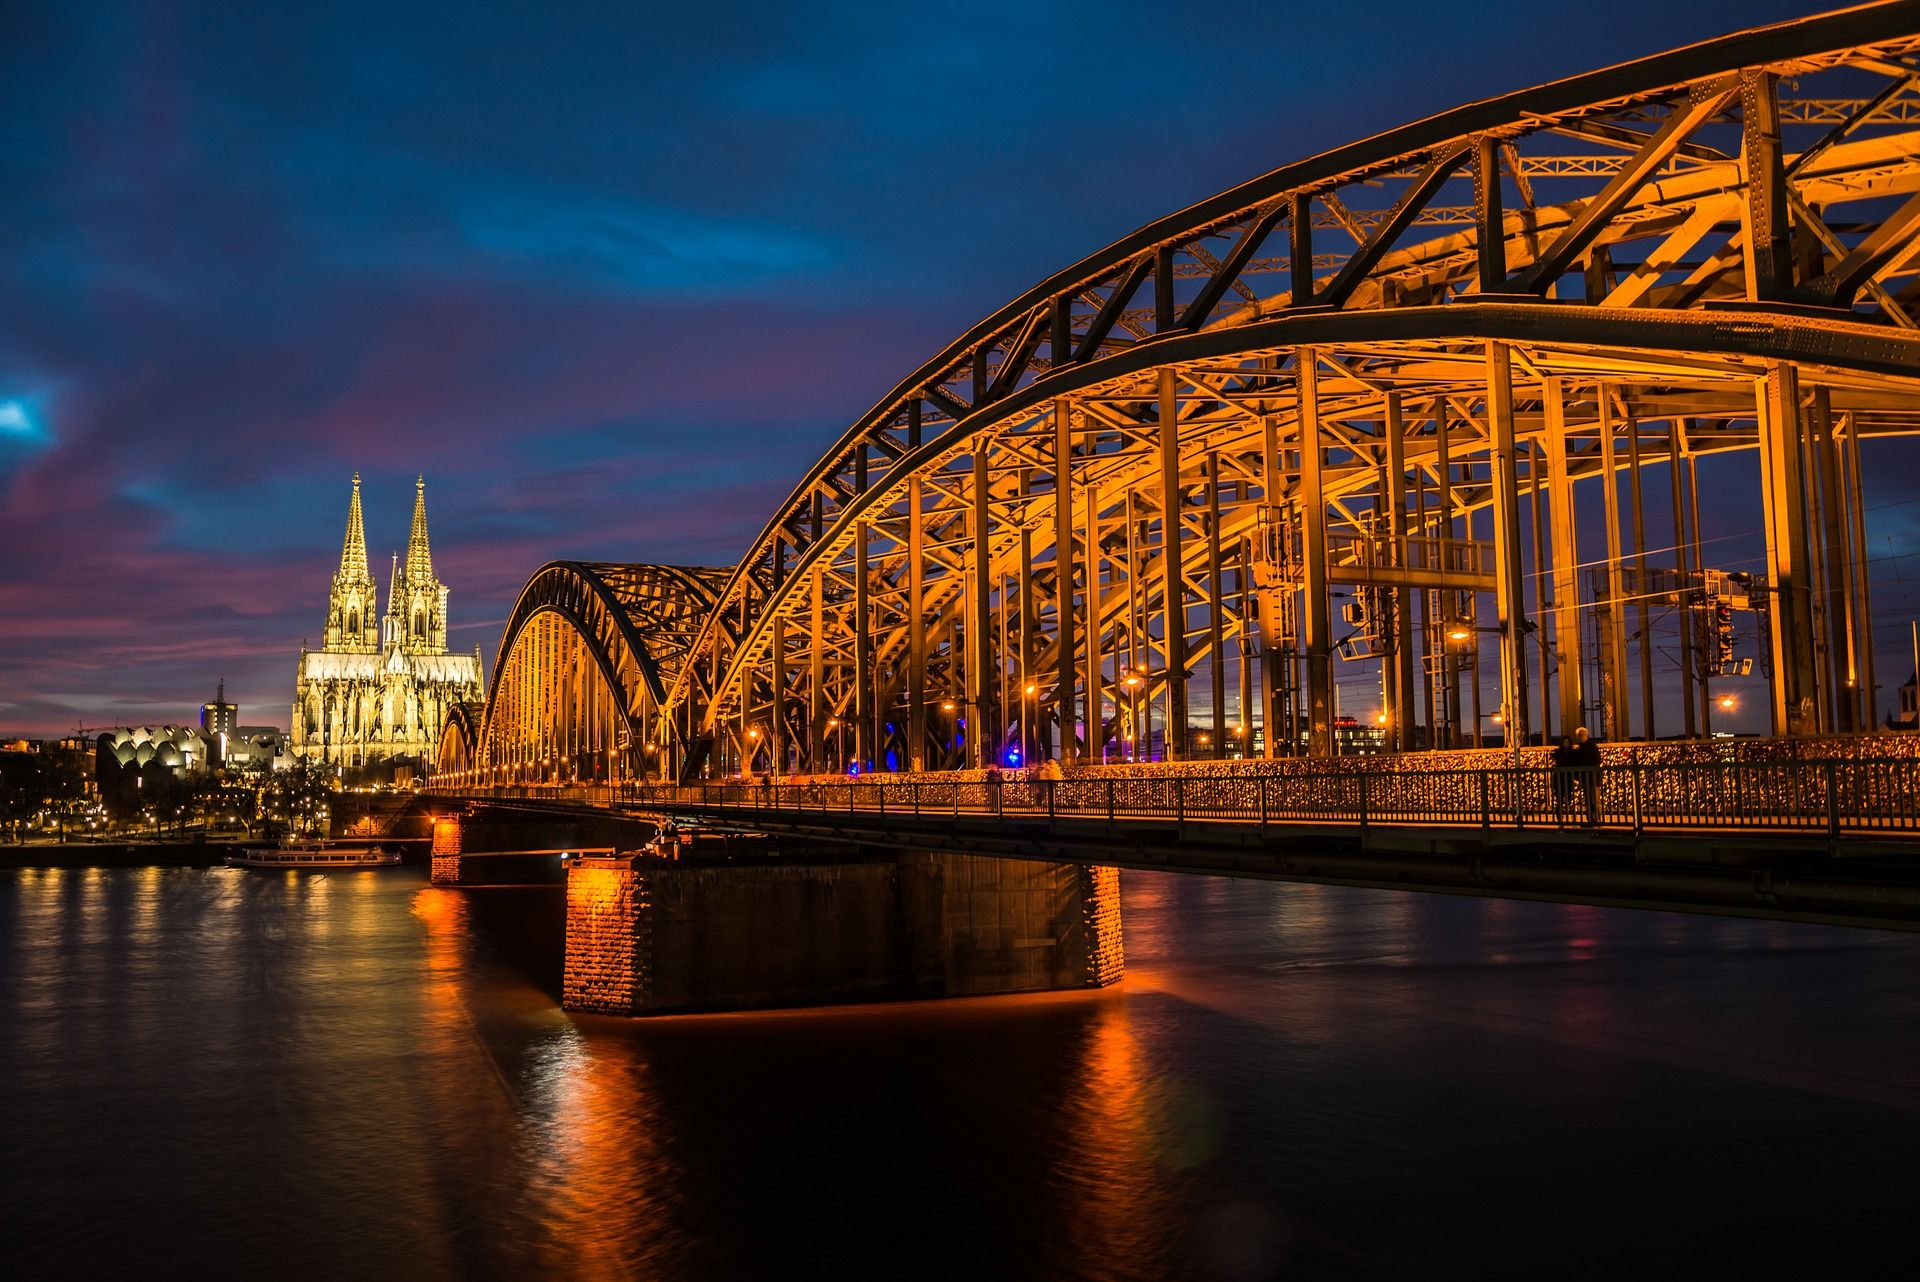 First Office 365 Conference in Germany